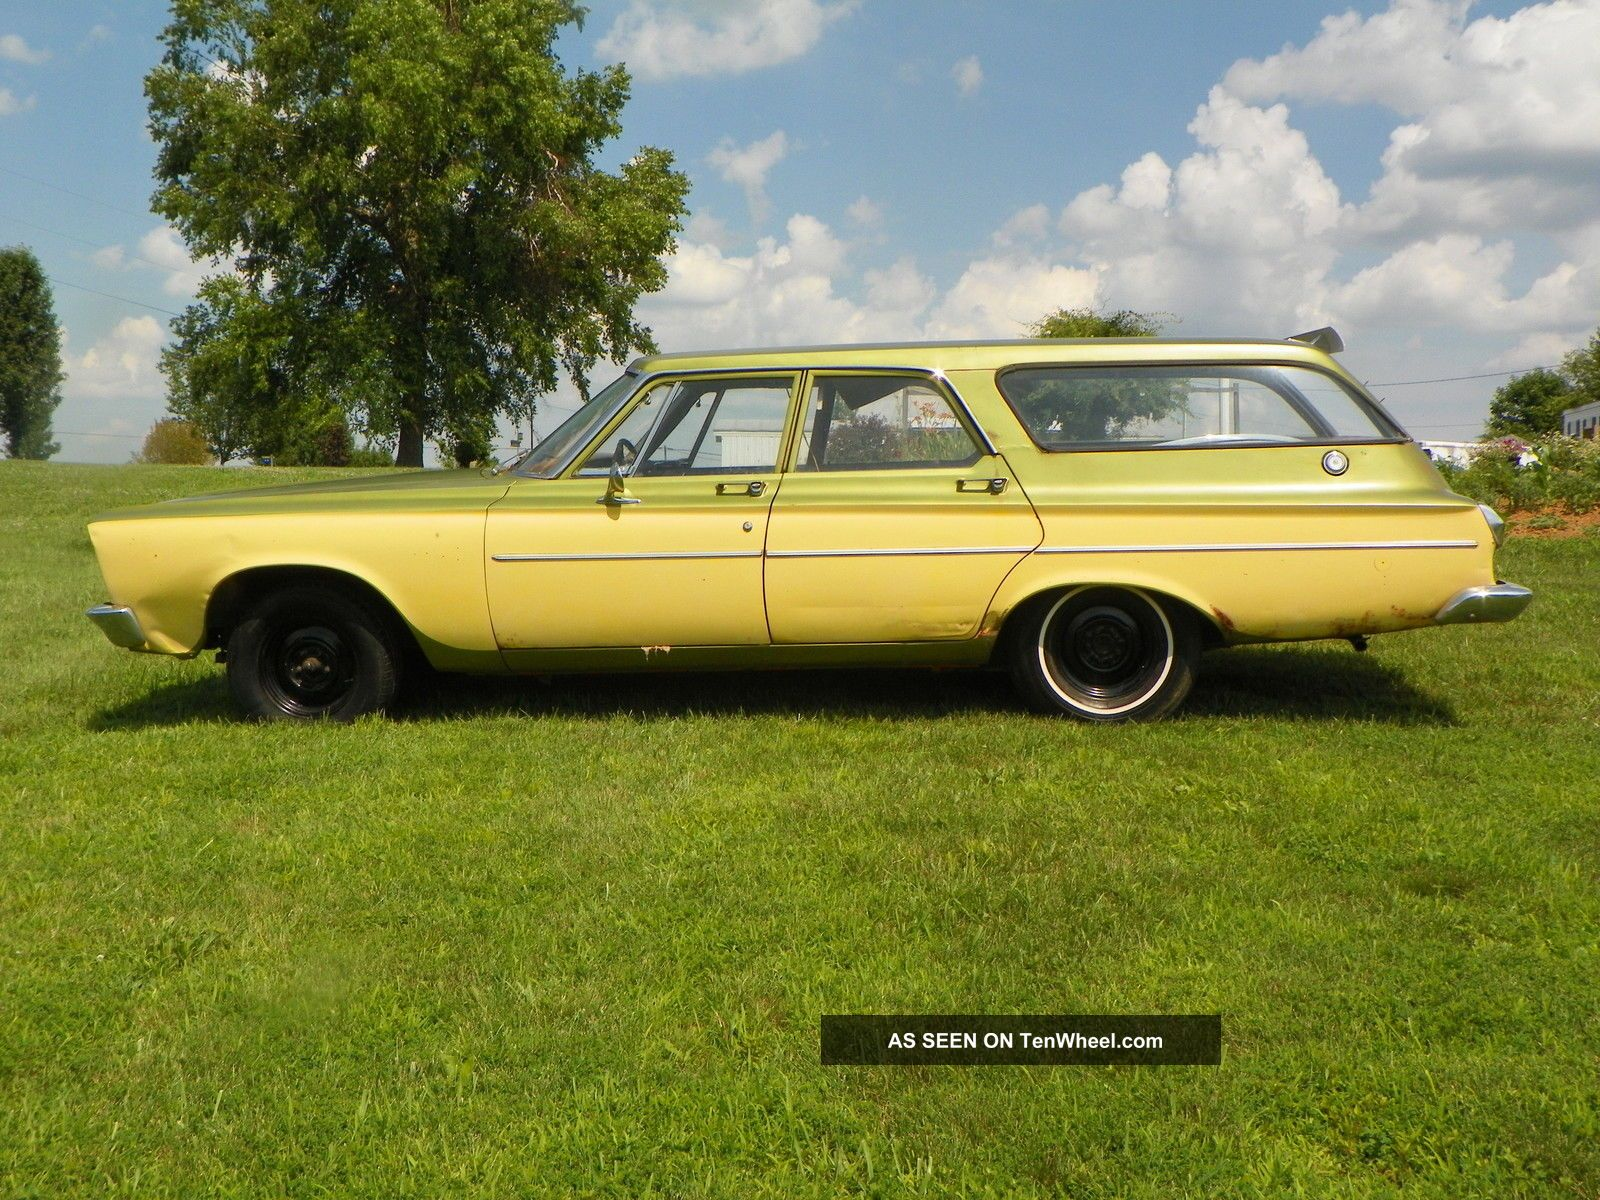 1966 Impala Wagon Wiring Diagram Free For You In Addition 1955 Chevy On Bel Air Belvedere Diagrams Schemes 1965